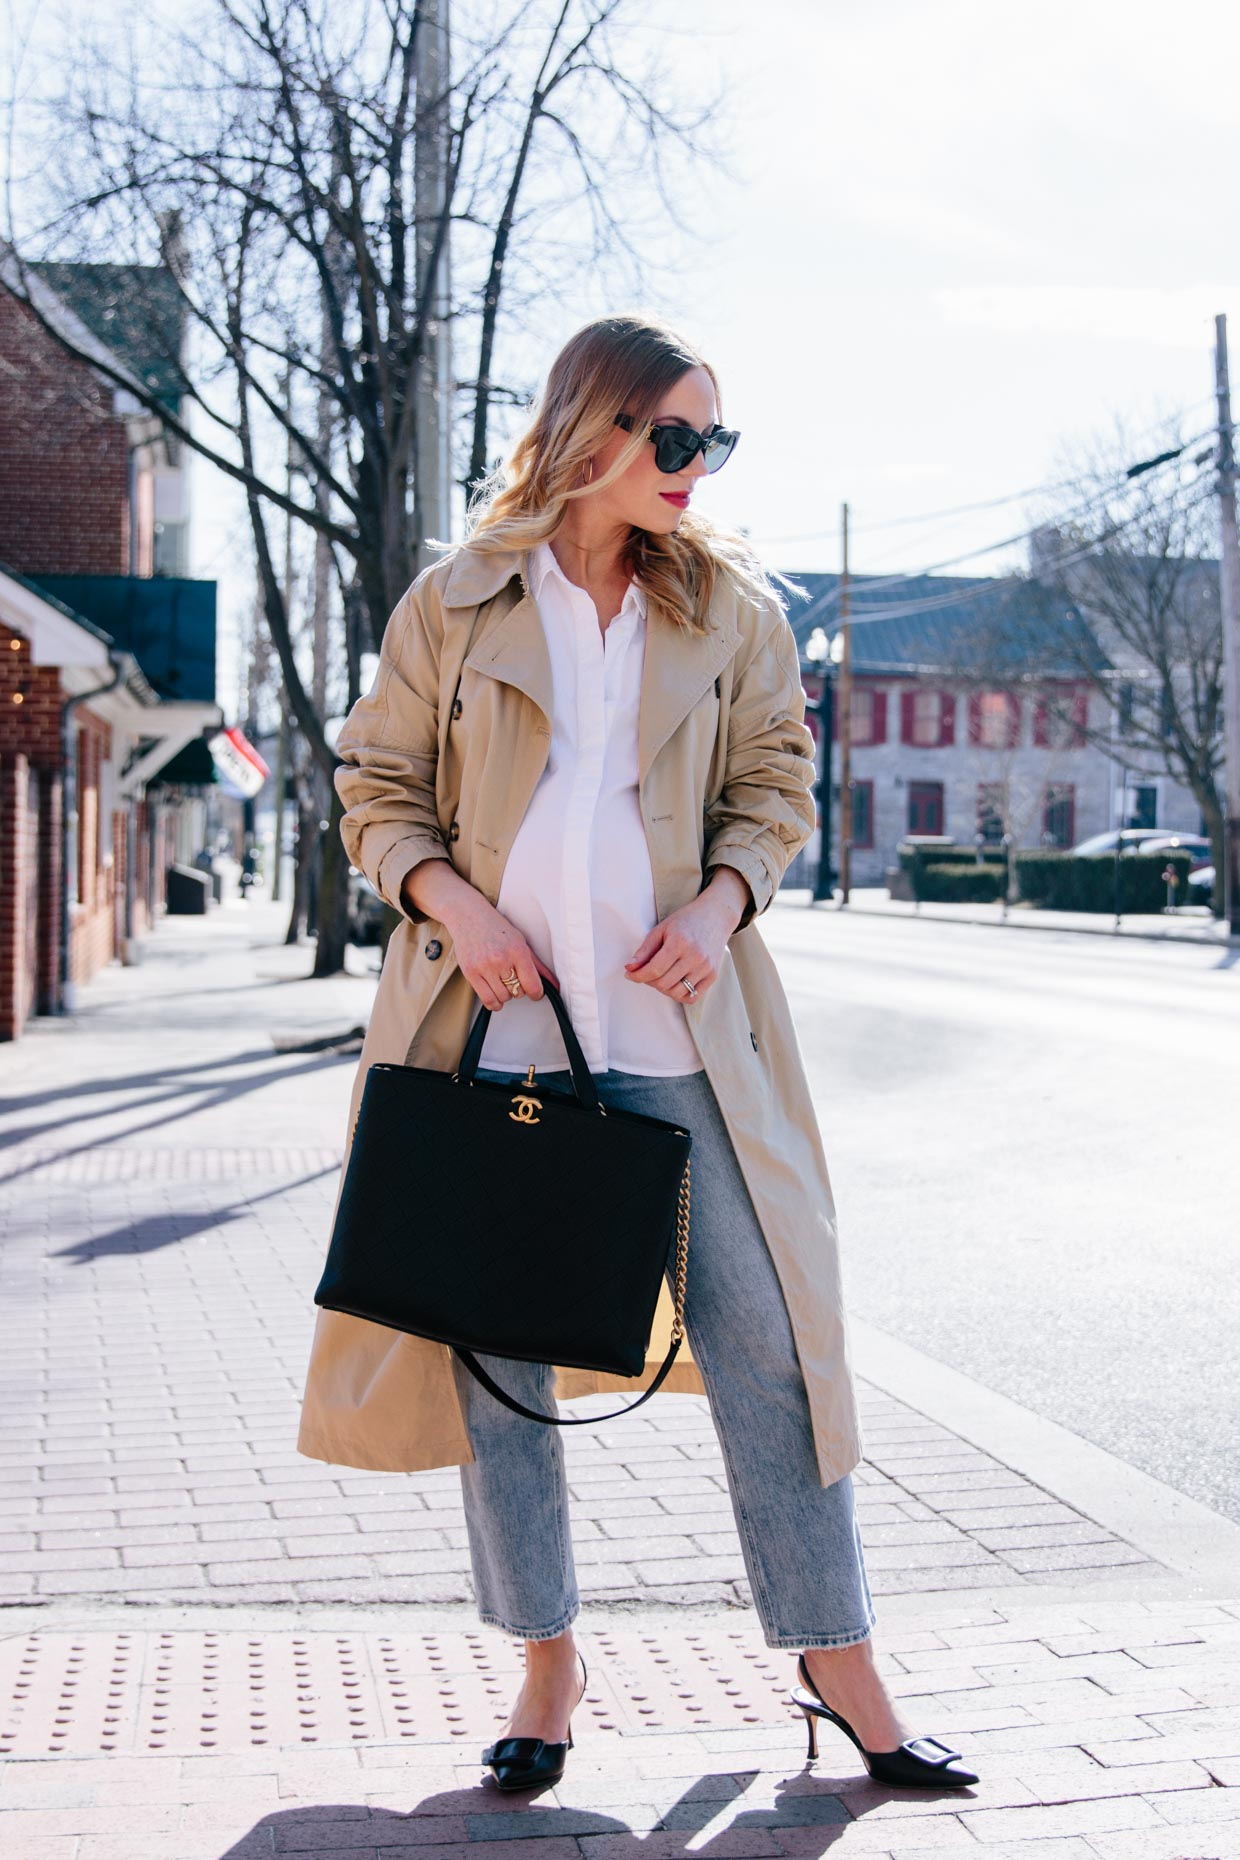 Meagan Brandon fashion blogger of Meagan's Moda wears khaki trench coat with white button shirt, straight leg cropped jeans and Chanel shopping tote spring outfit